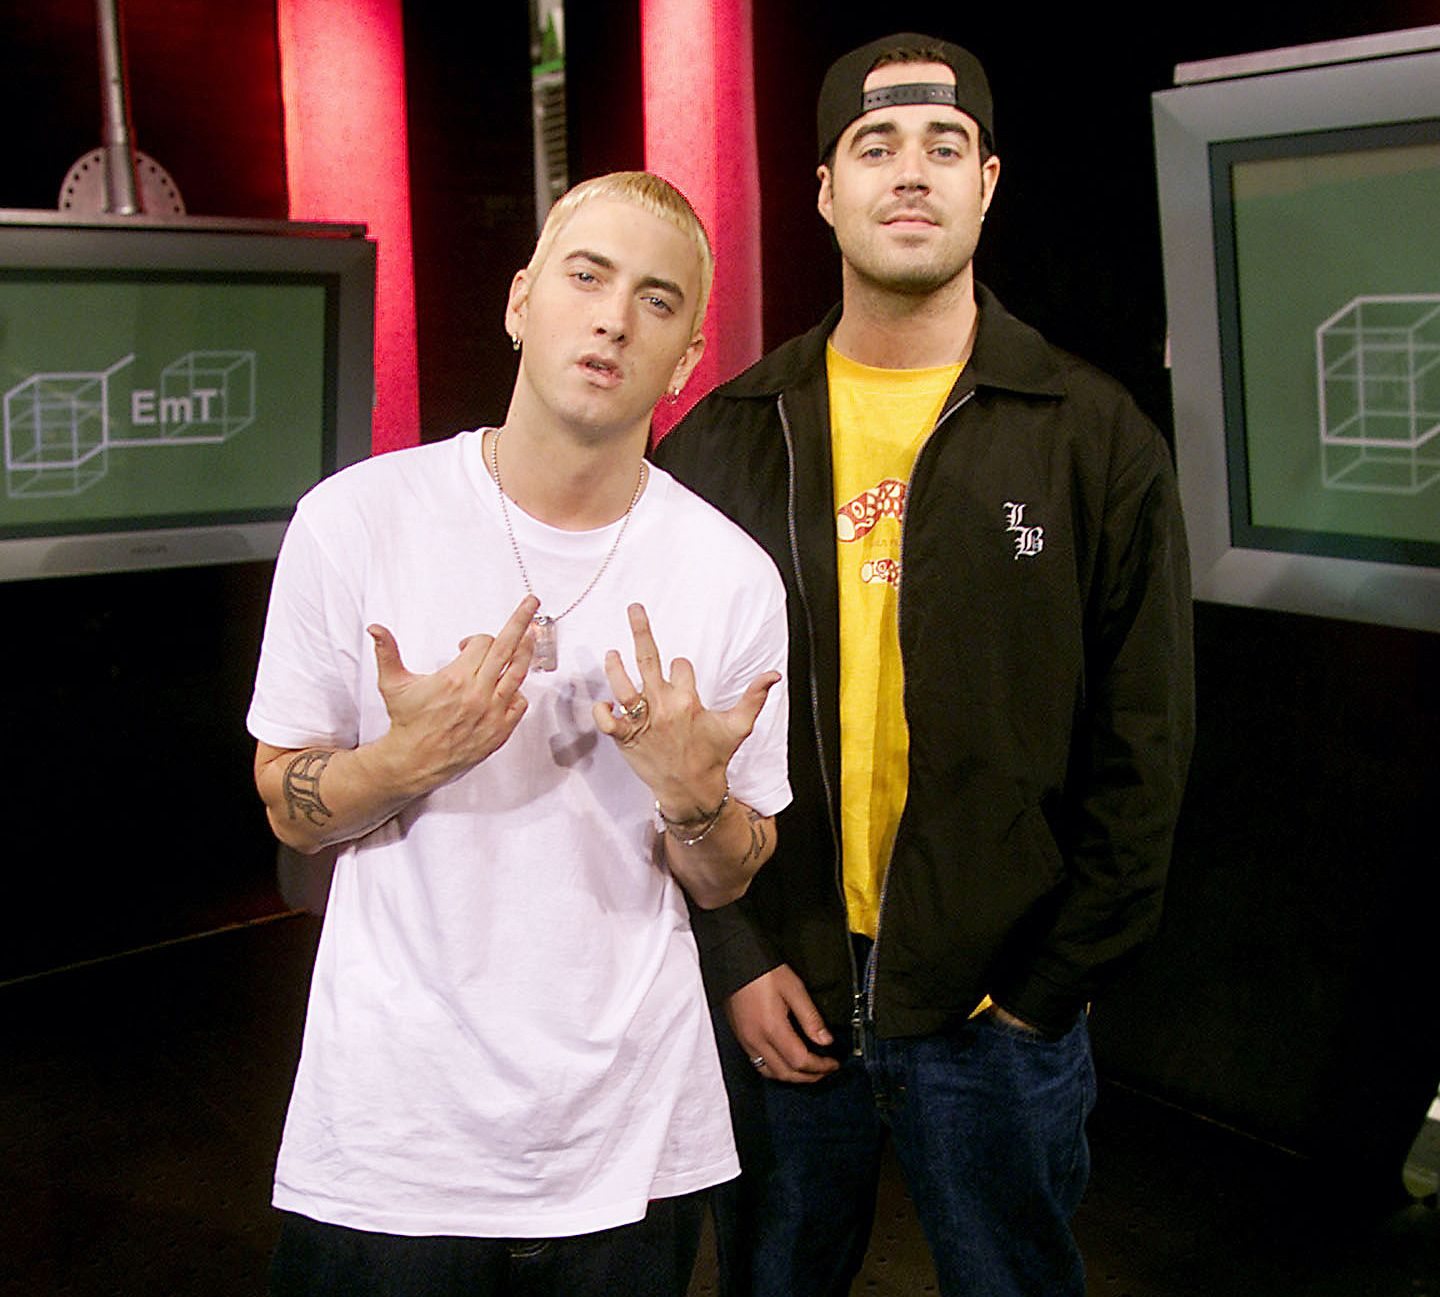 The Trl Total Request Live Days Back When Mtv Played More